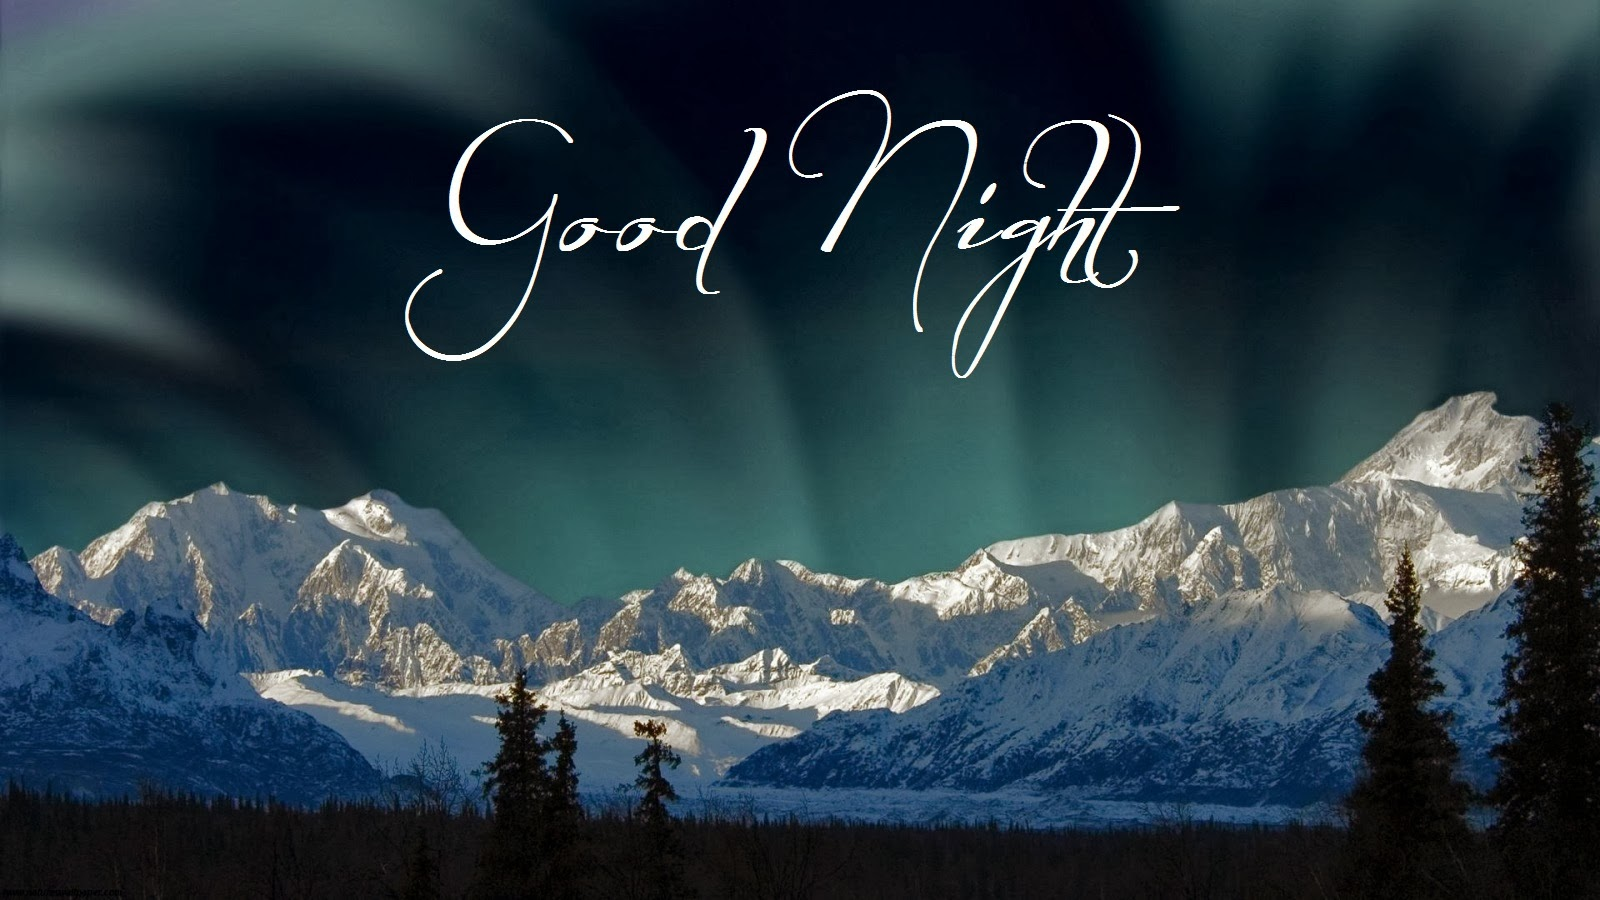 Love Wallpaper For Good Night : Lovely Good Night wallpapers ~ Allfreshwallpaper